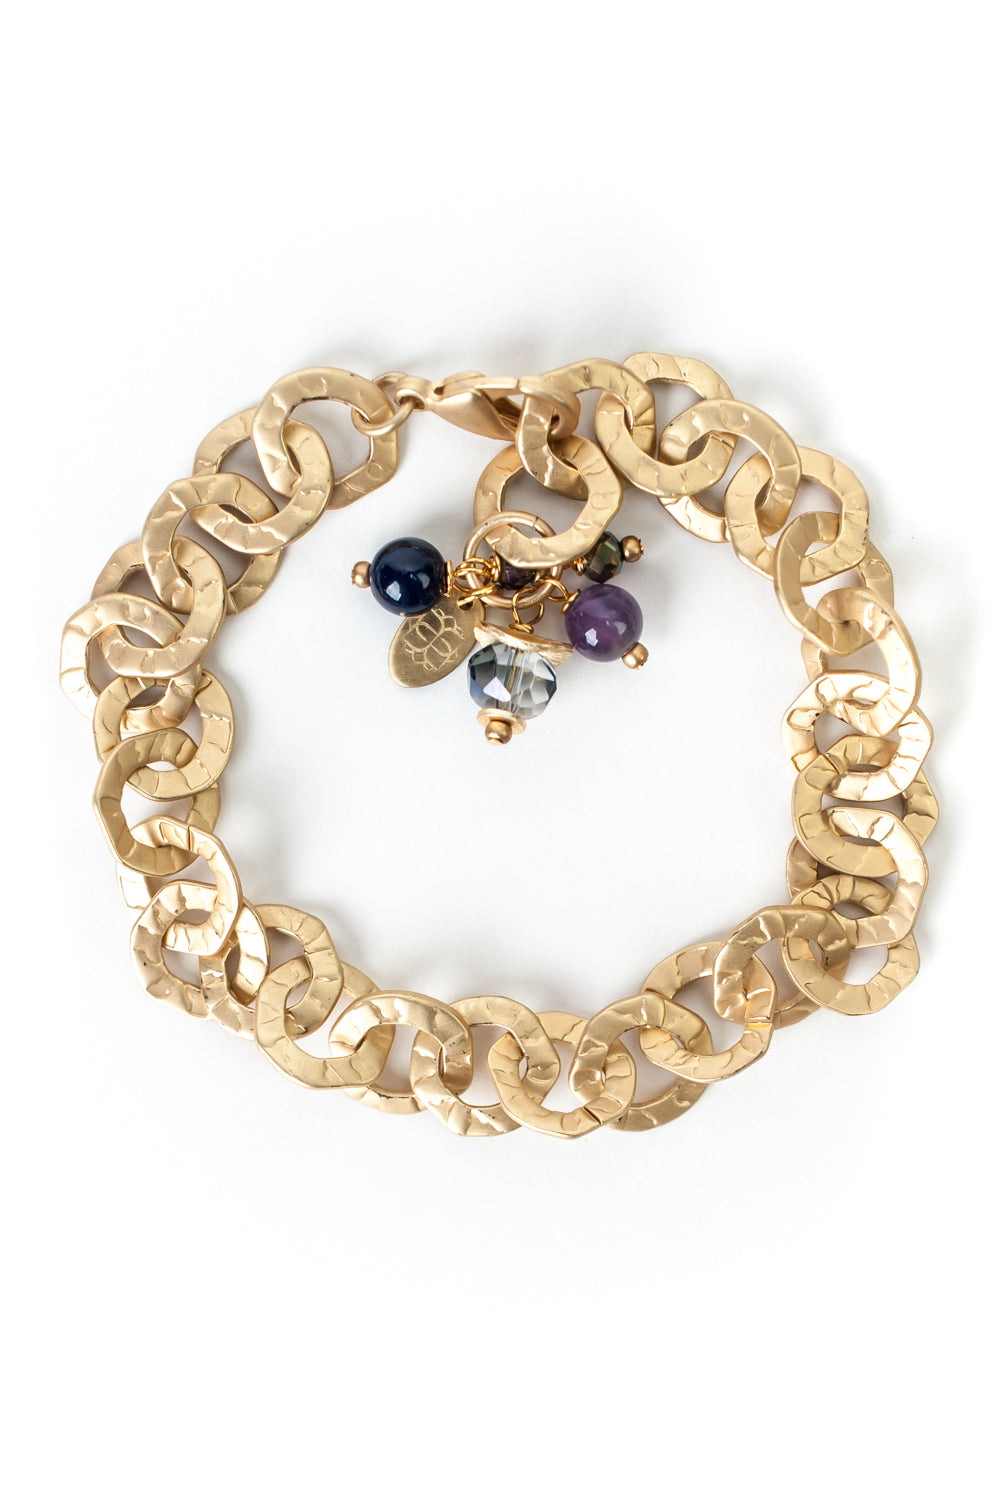 "Midnight 8.5"" Simple Gold Chain Bracelet"